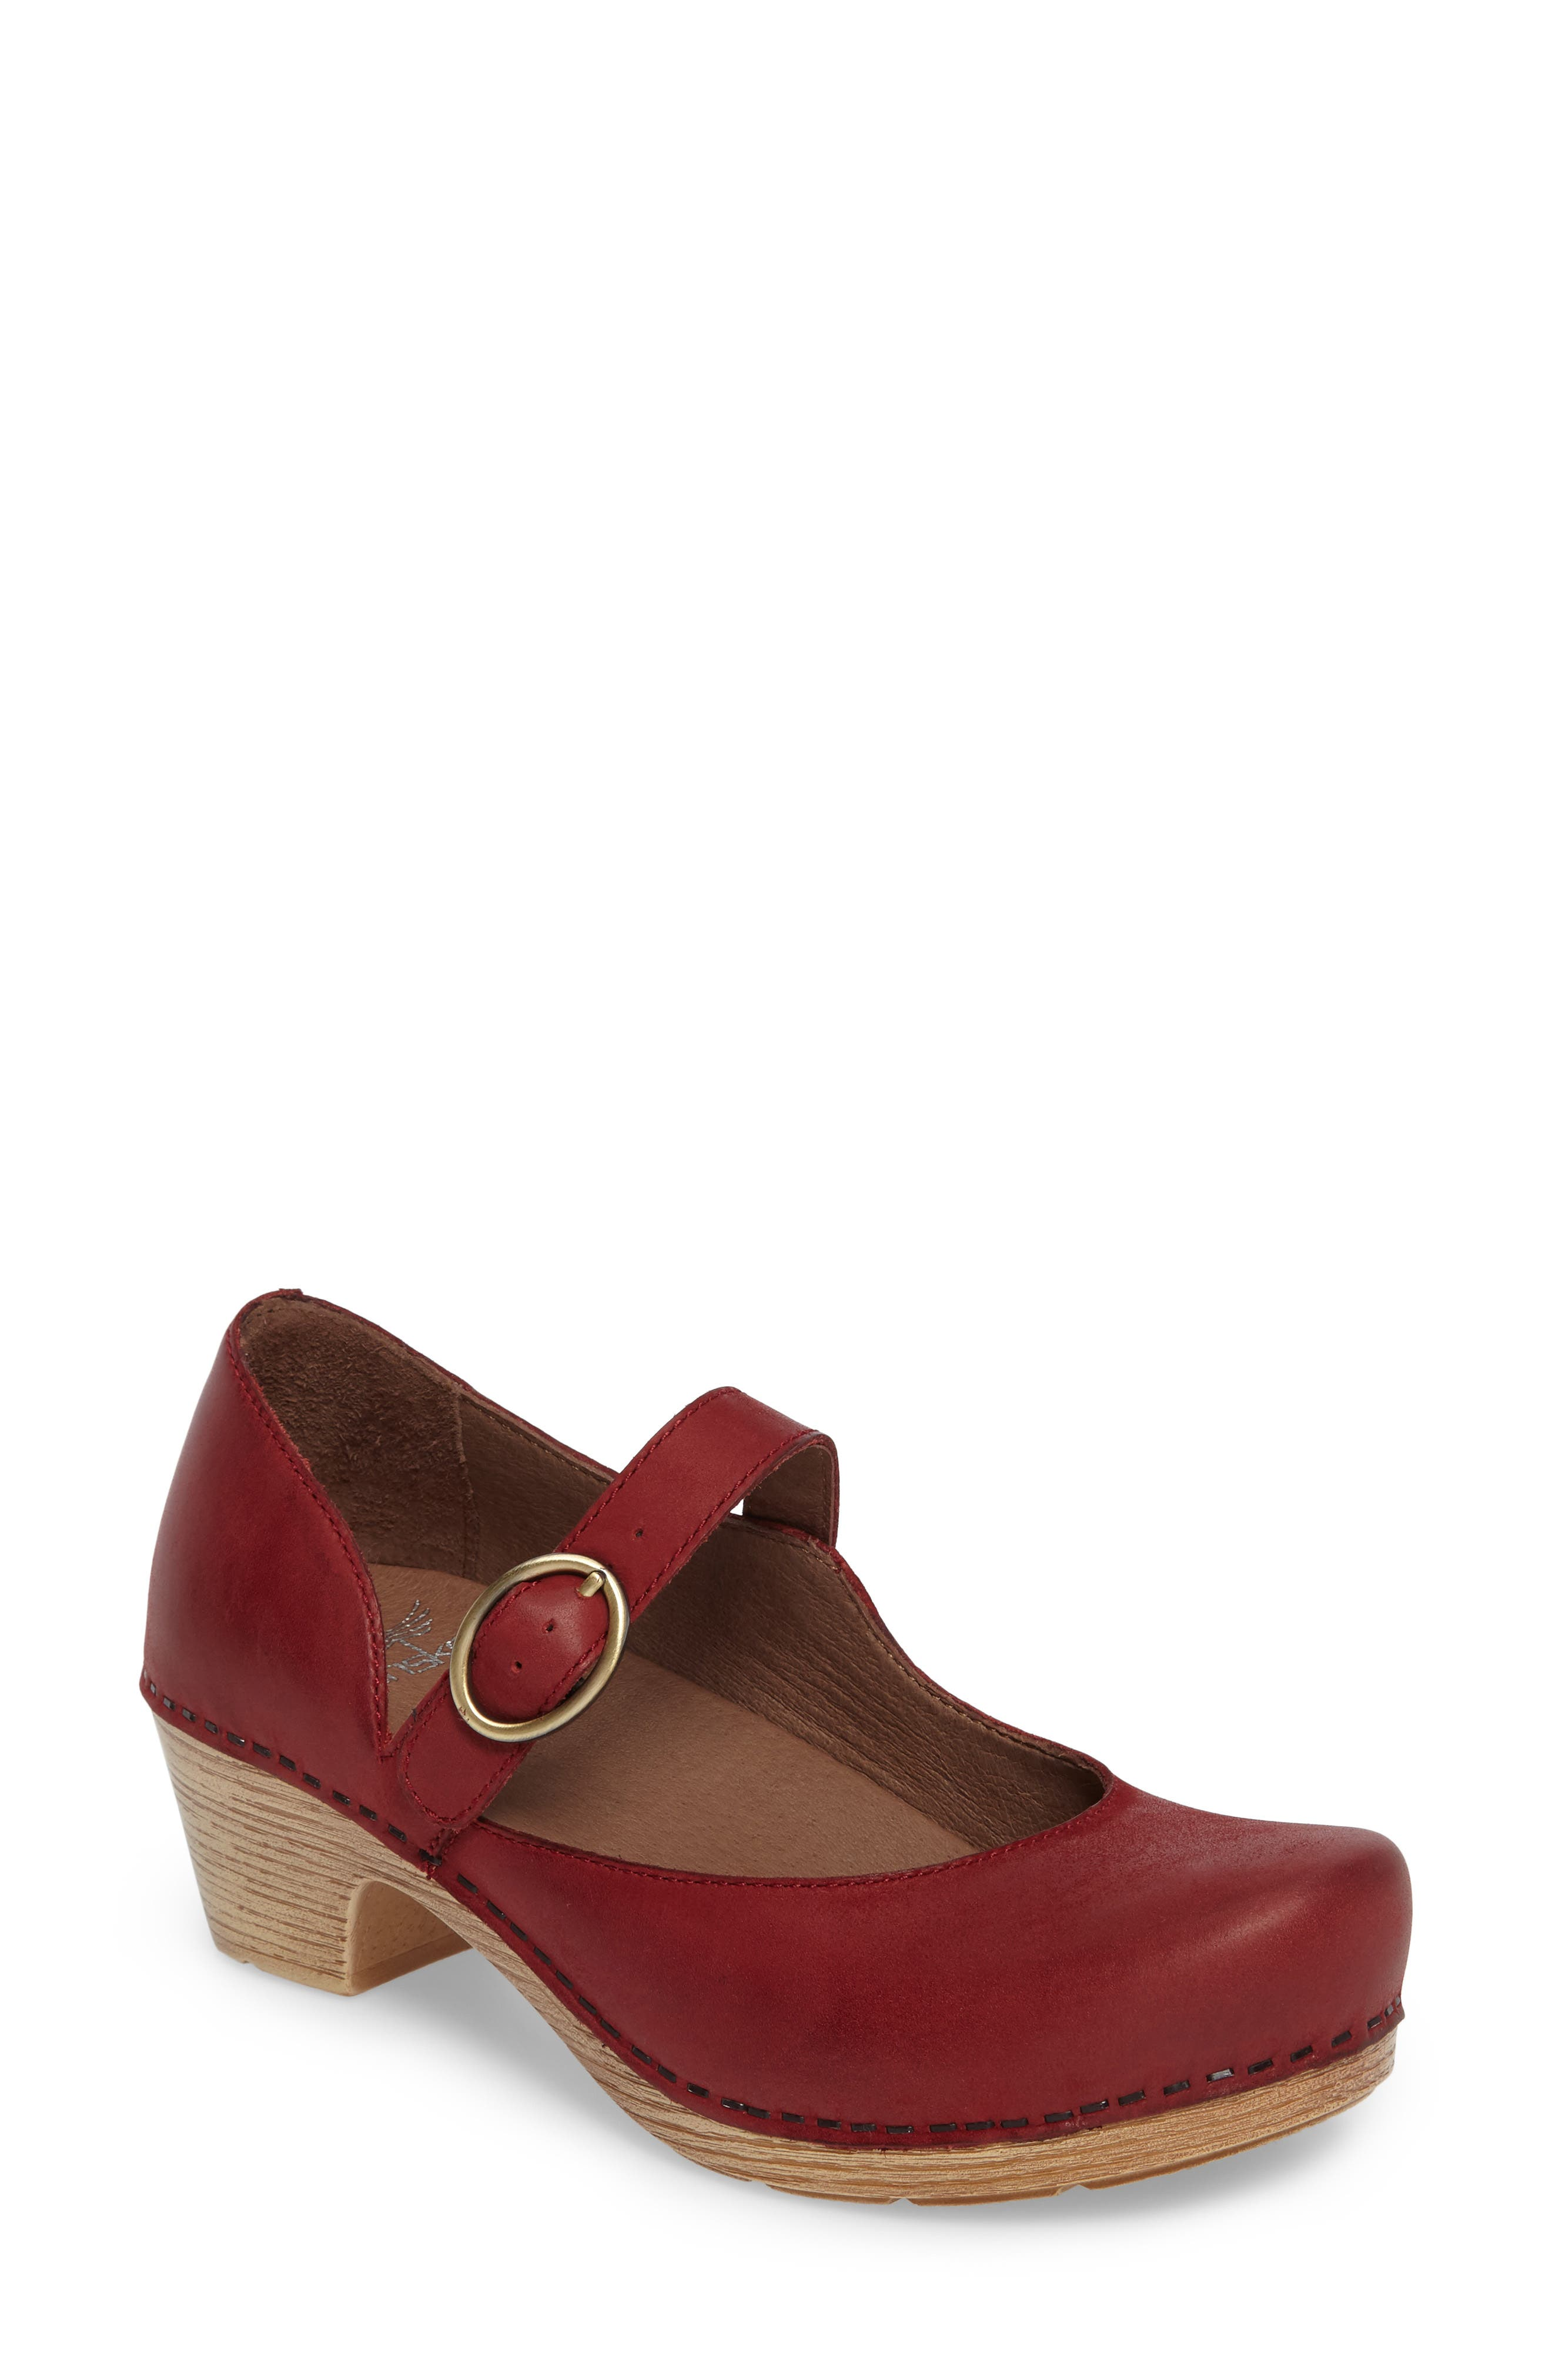 Missy Mary Jane Pump,                             Main thumbnail 1, color,                             Red Leather